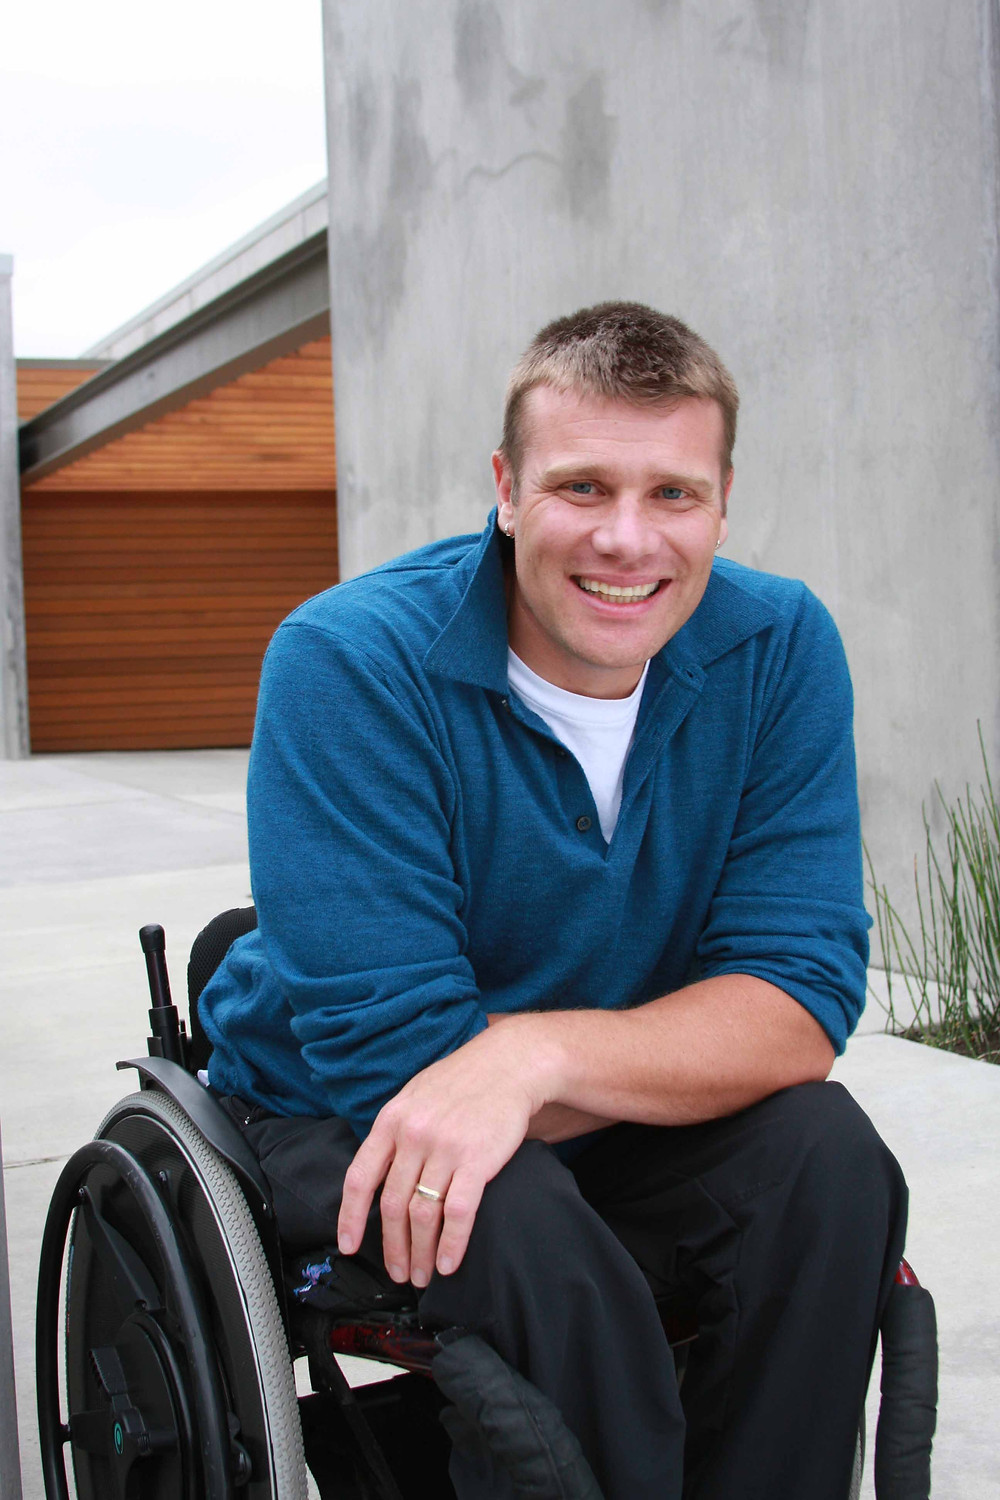 Barry sitting in his wheelchair in front of a modern, concrete house